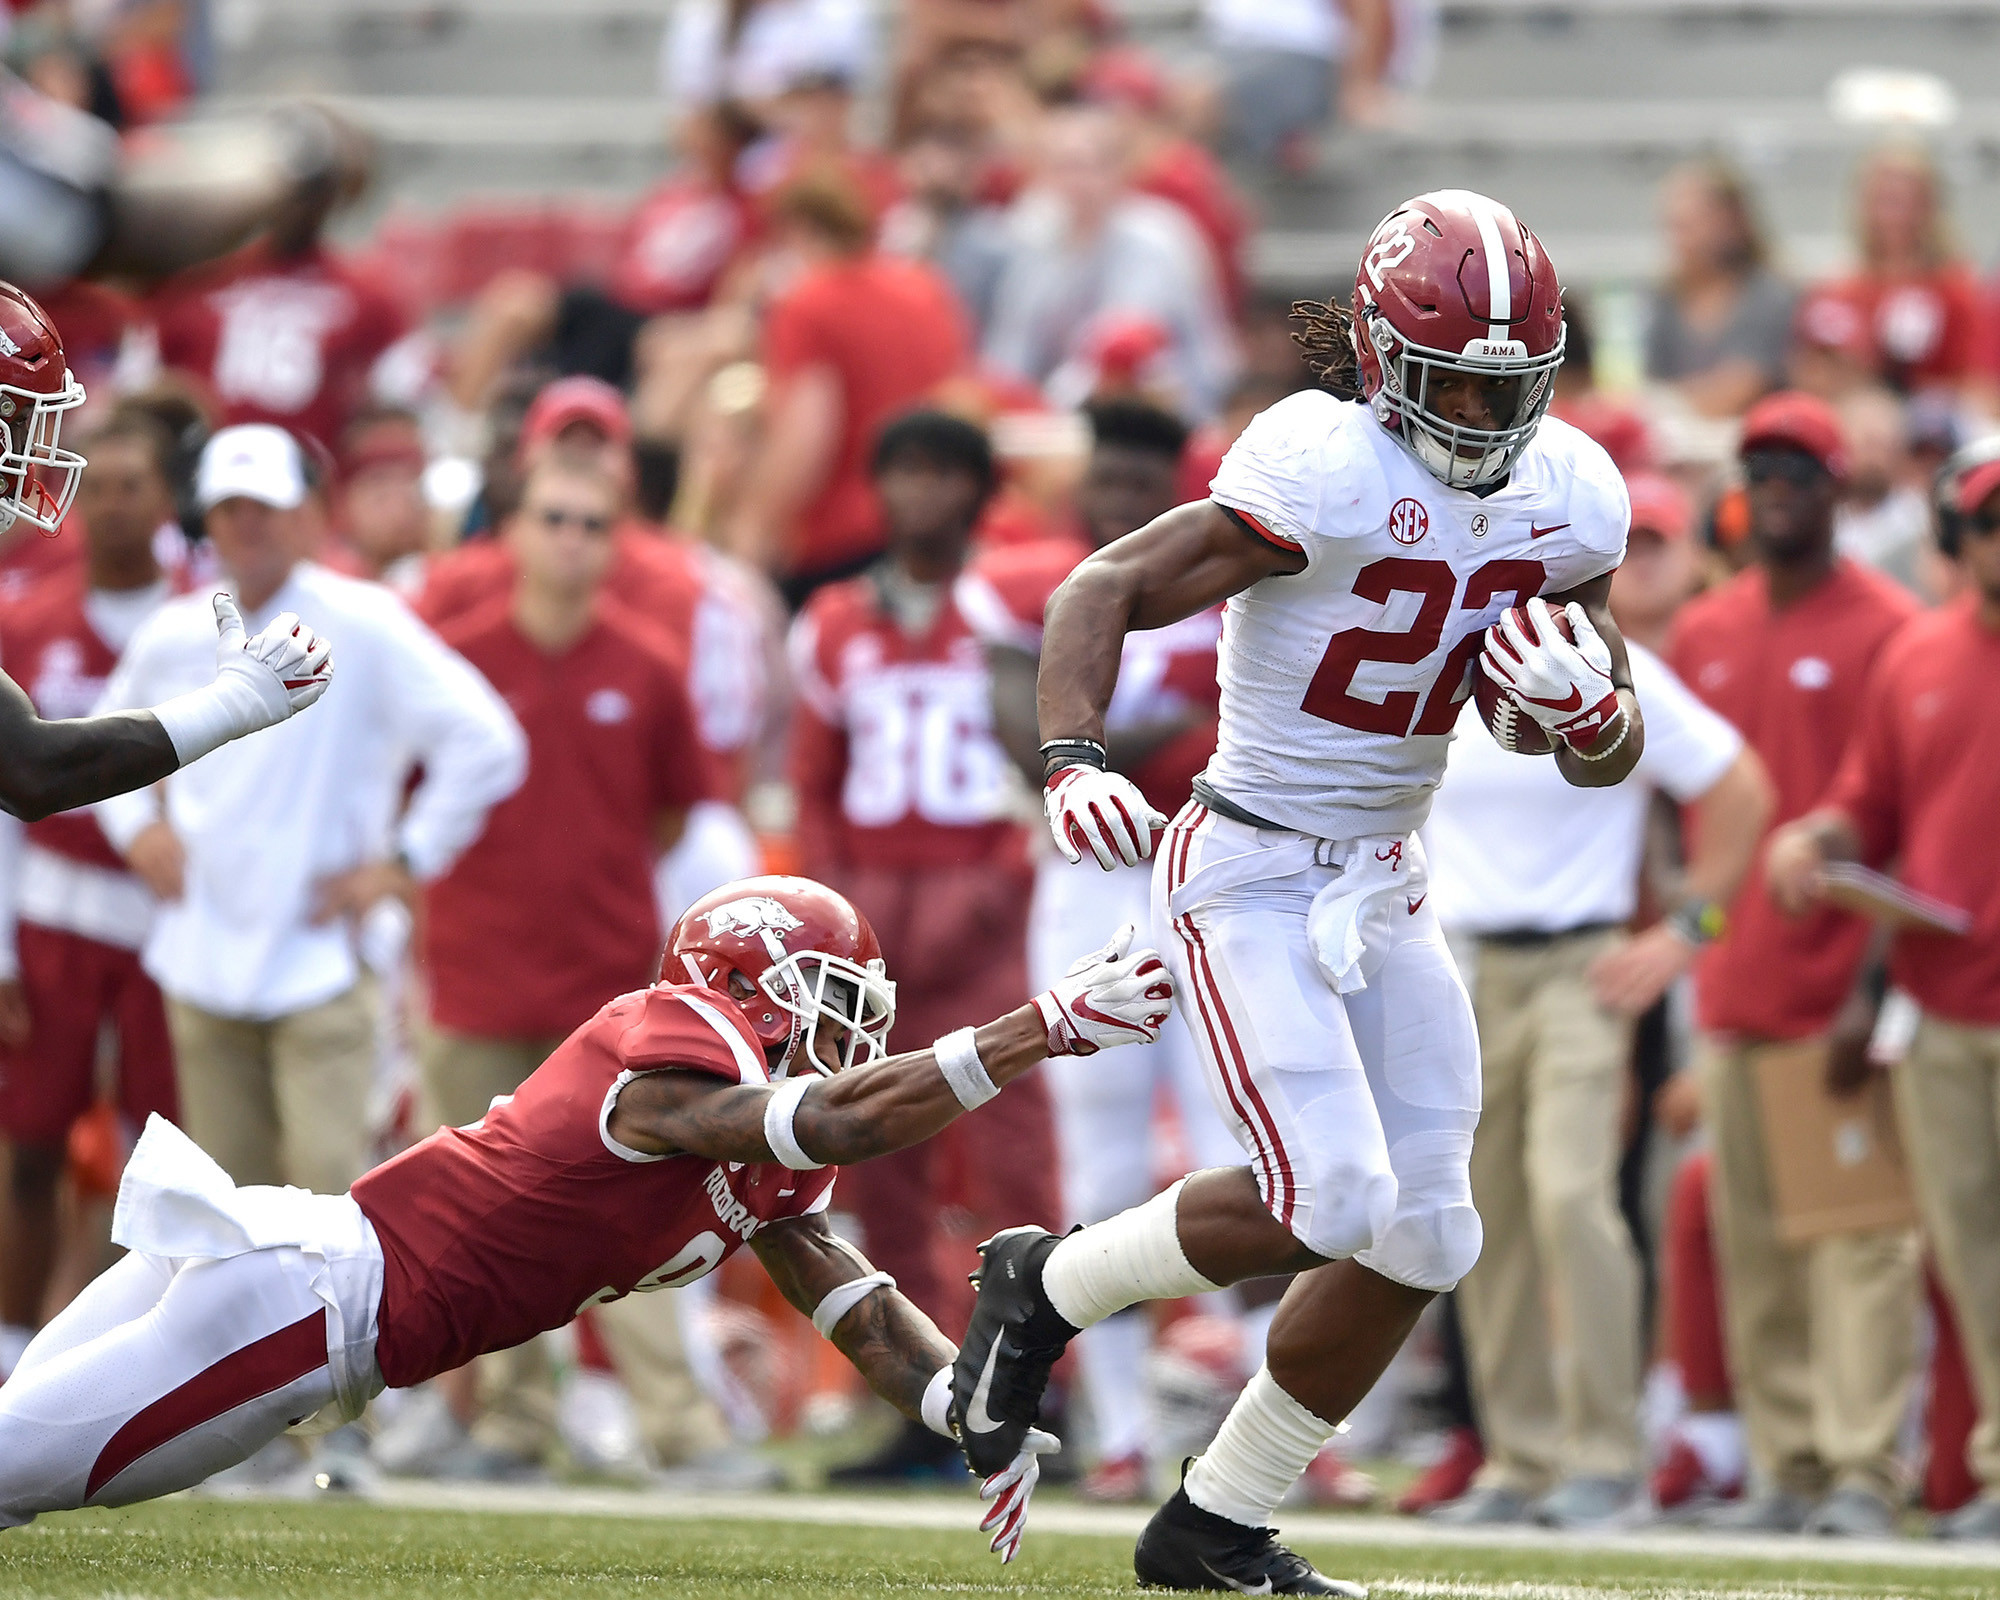 Alabama Crimson Tide running back Najee Harris (22) with a carry in the second half of the NCAA football game against the Arkansas Razorbacks at Razorback Stadium on Oct. 6, 2018, in Fayetteville, Ark. Alabama defeated Arkansas 65-31. (Photo by Lee Walls)